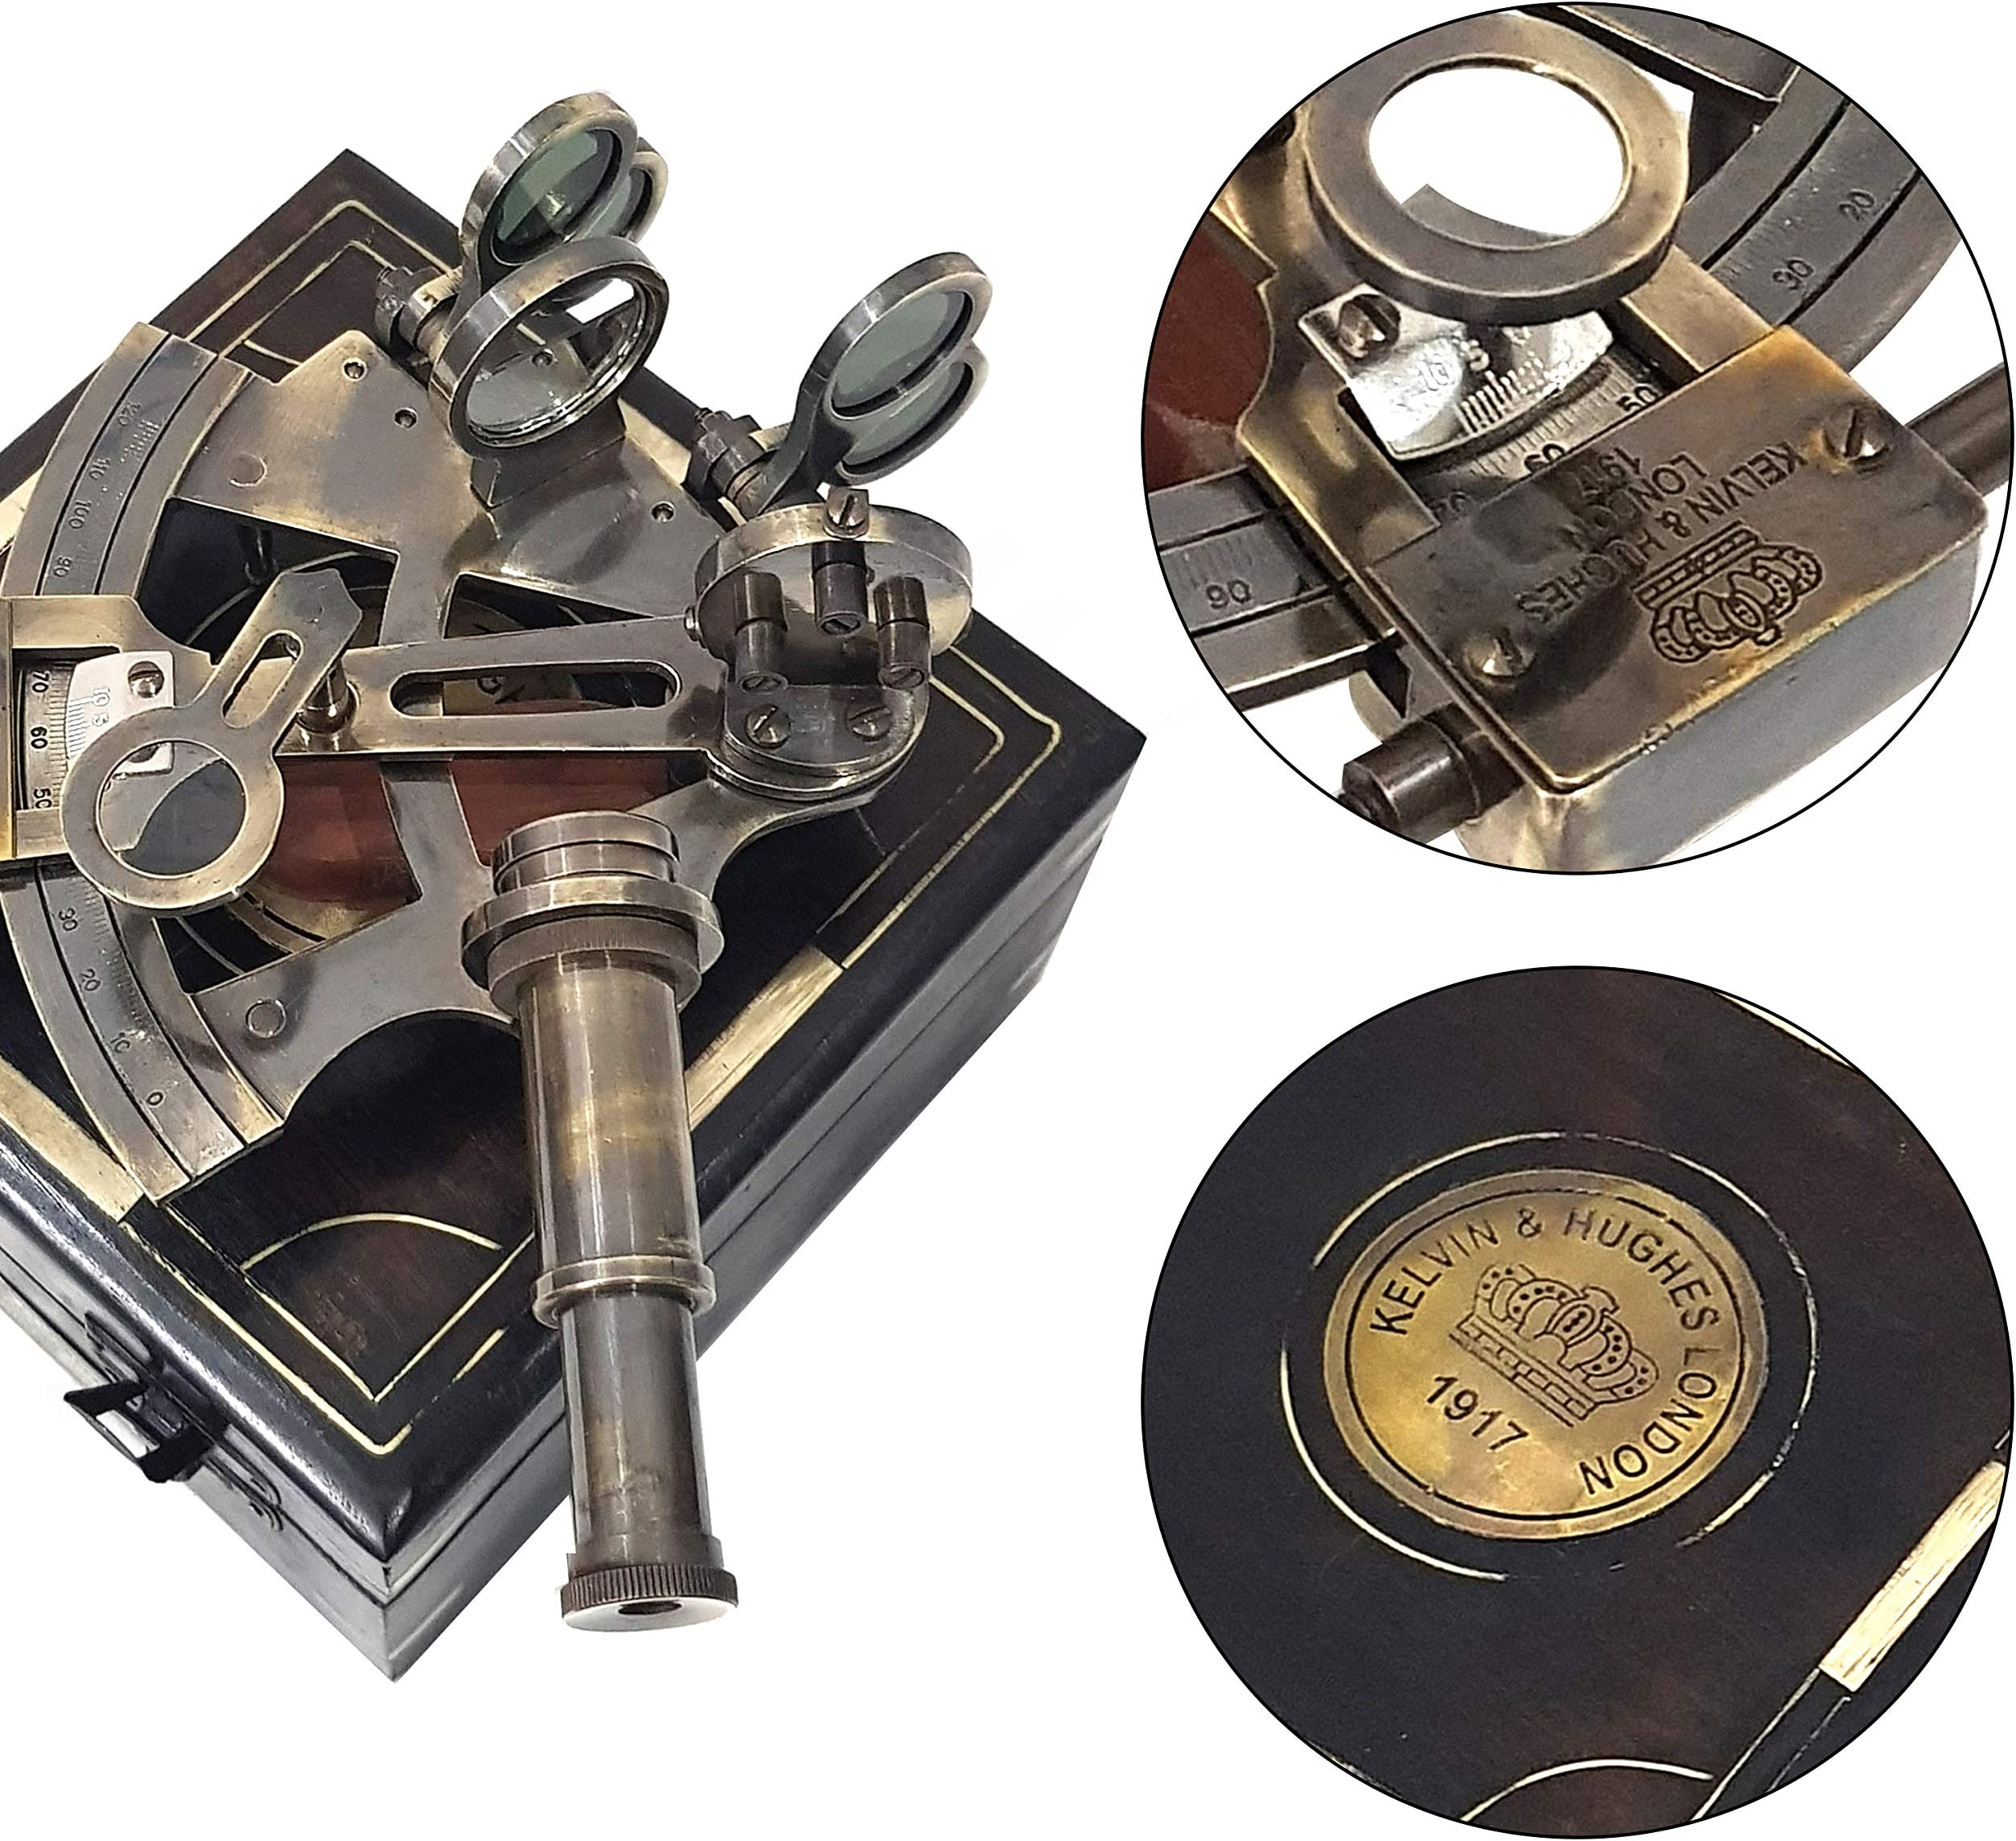 Antique Maritime Brass Sextant Vintage Nautical Kelvin /& Hughes Sextant in Cover